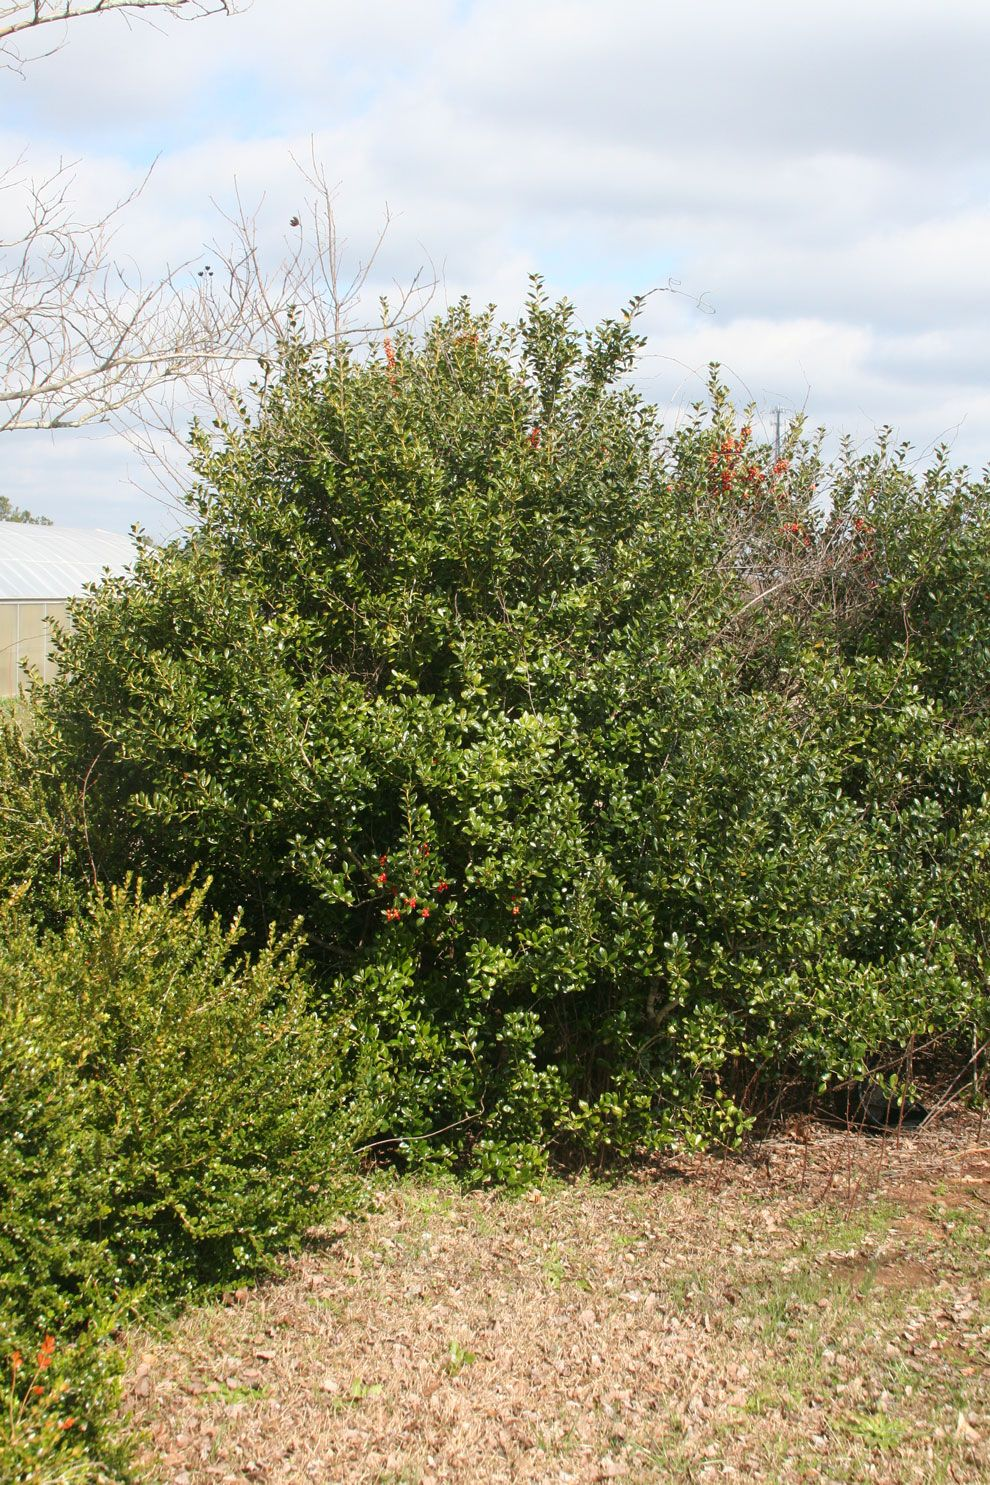 Pruning Tips to Salvage Your Overgrown Landscape - State-by-State Gardening #overgrownaesthetic